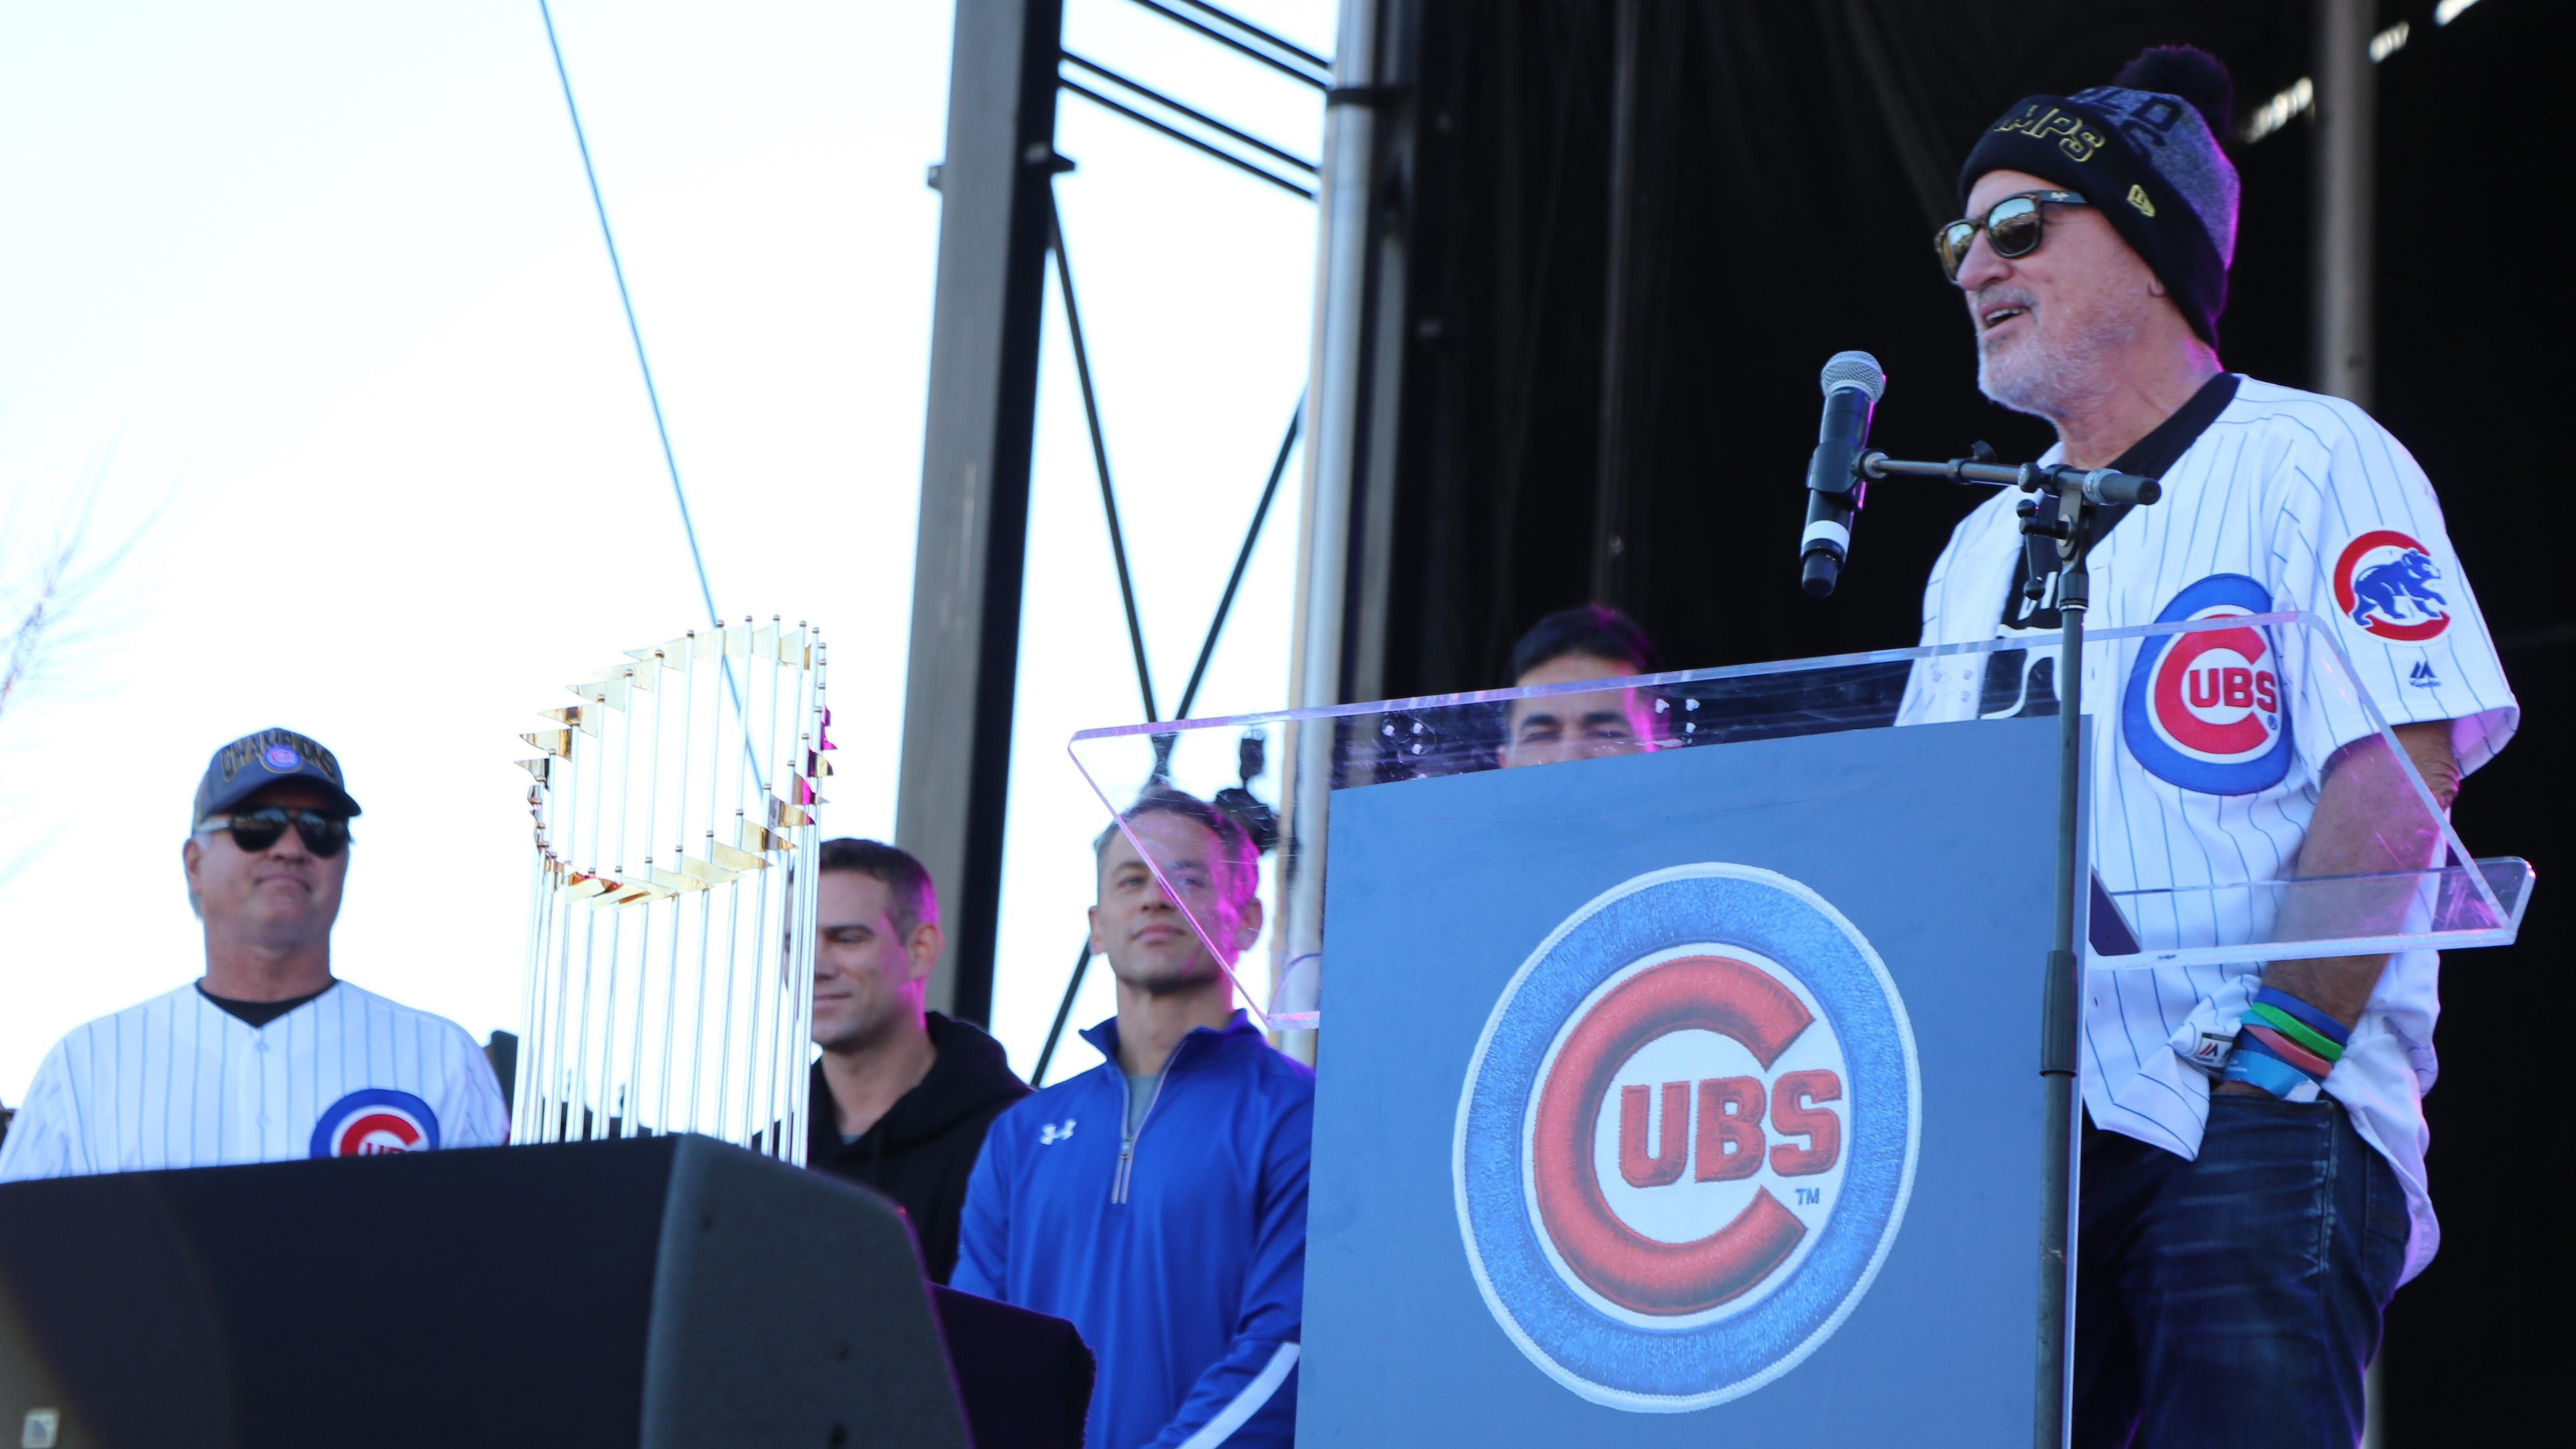 Chicago Cubs manager Joe Maddon, standing next to the Commissioner's Trophy, addresses the crowd in Grant Park on Nov. 4, 2016 during the team's World Series rally. (Evan Garcia / Chicago Tonight)